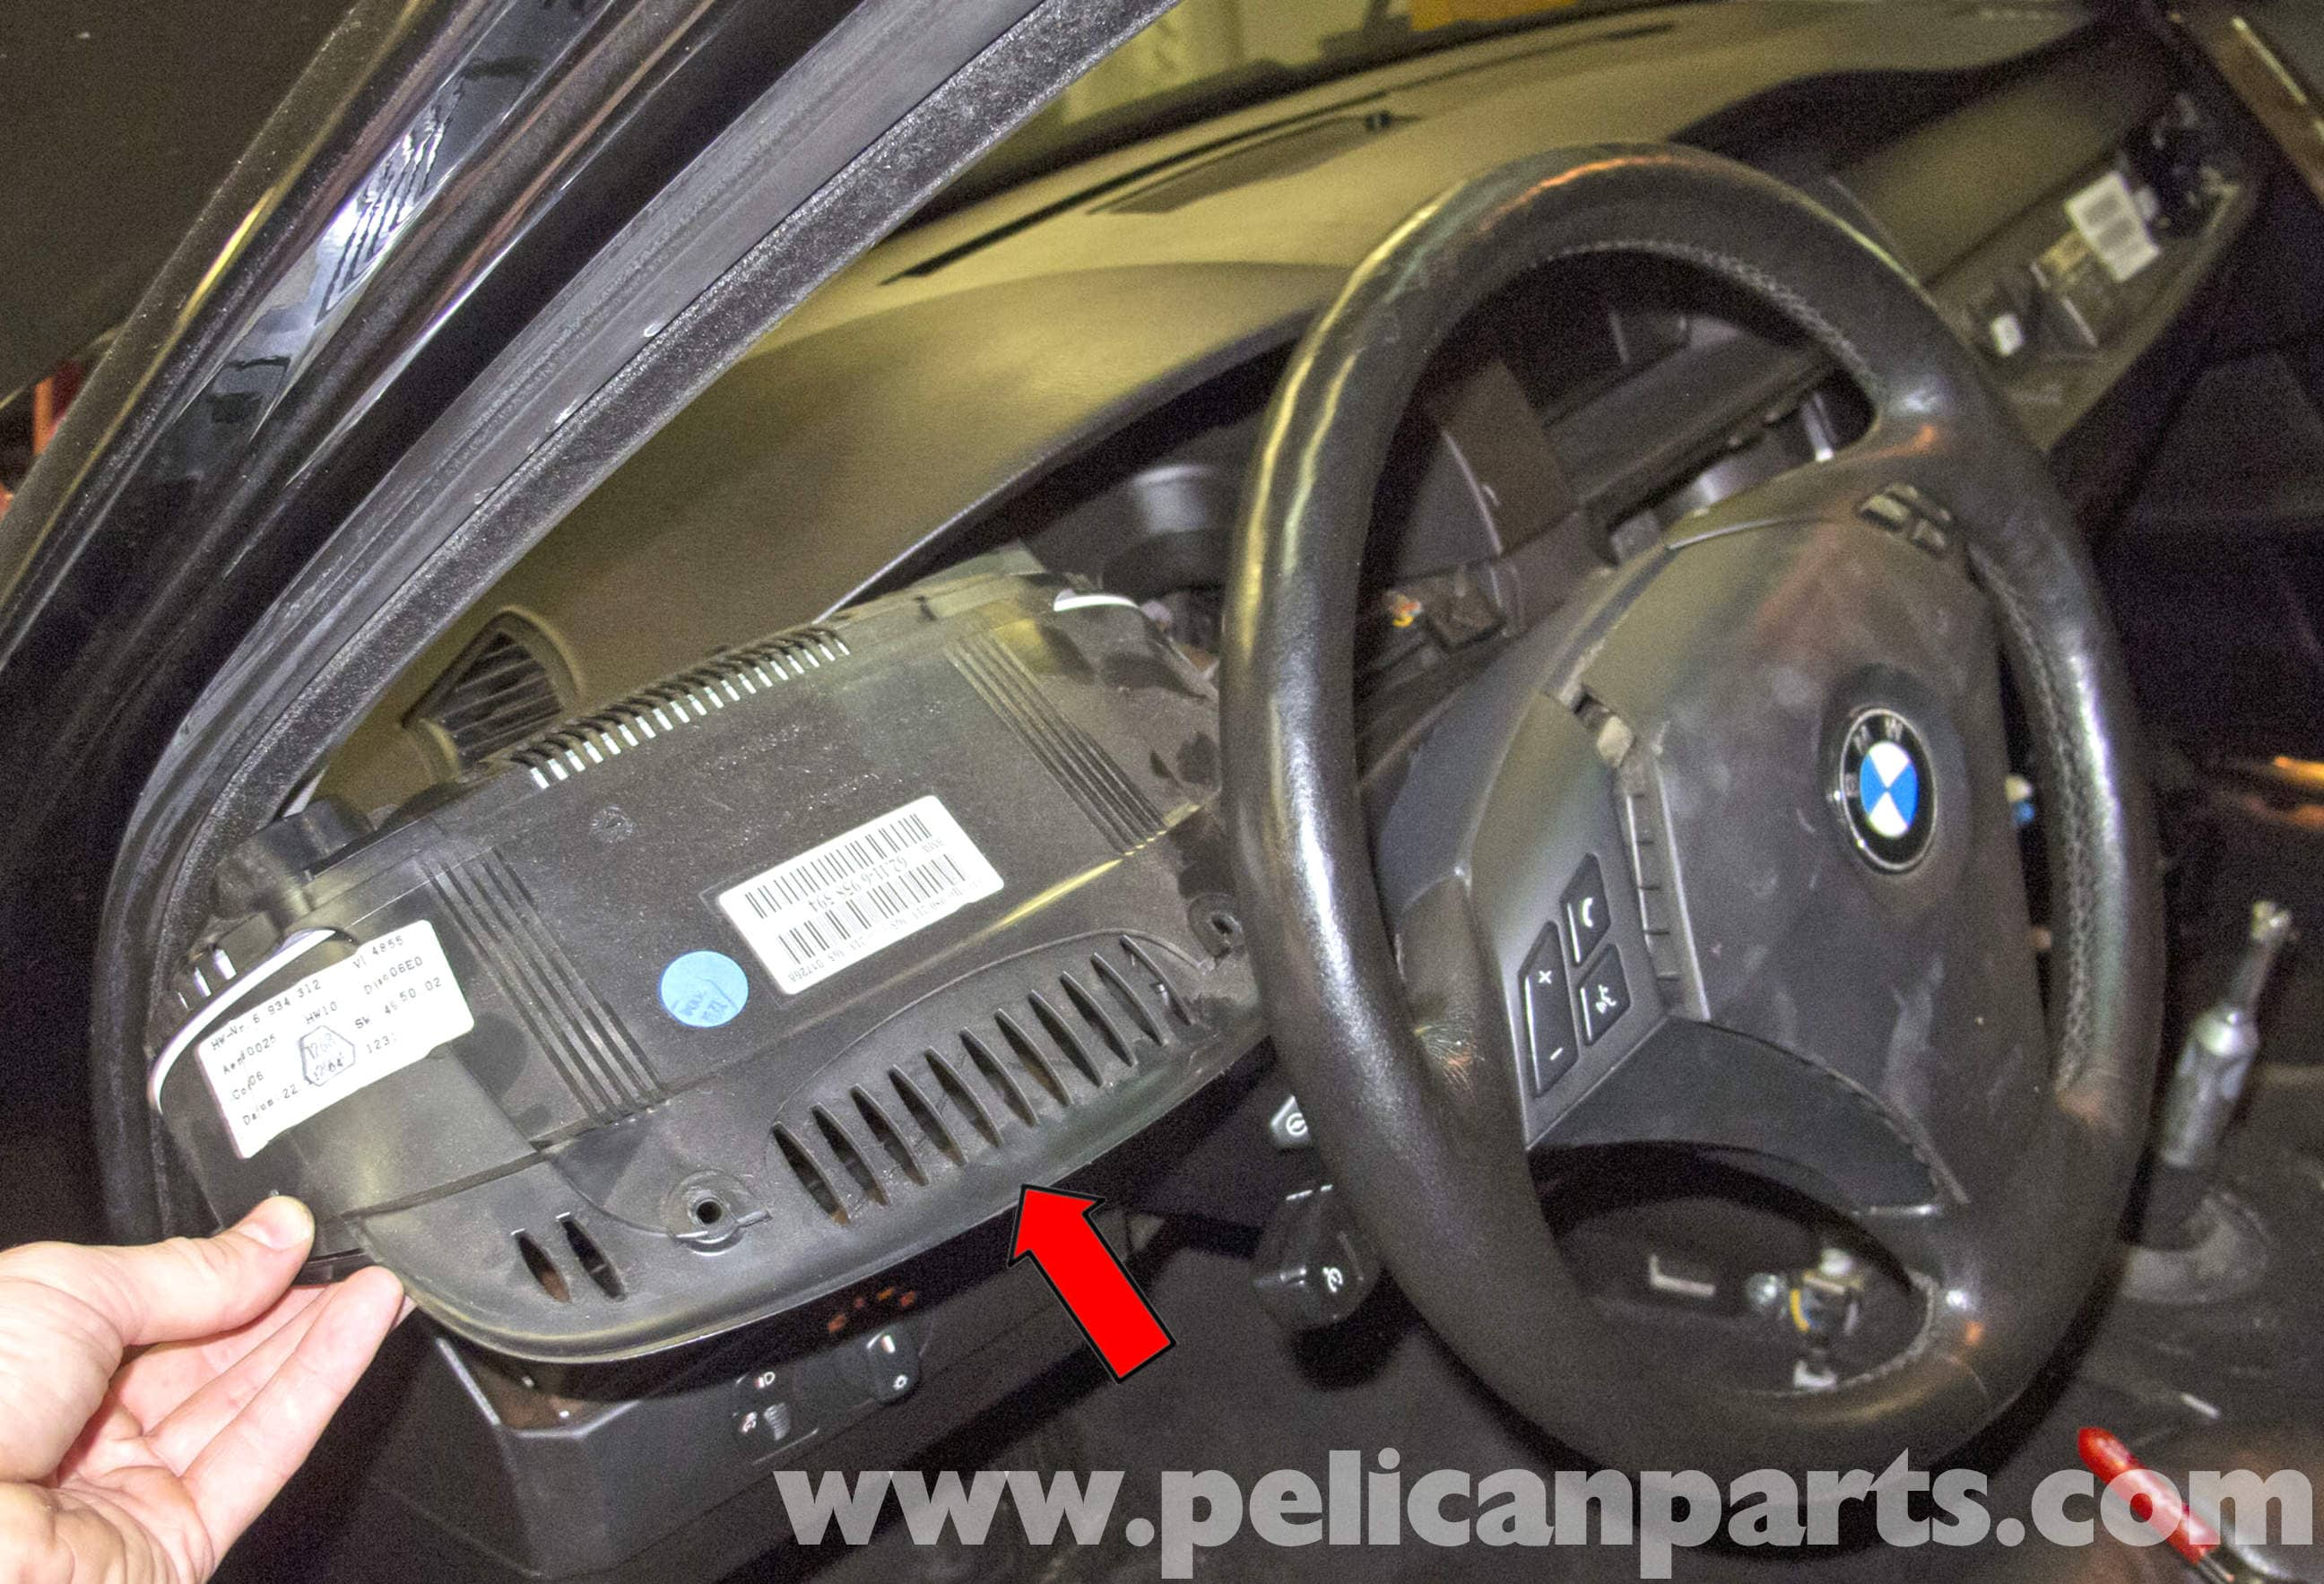 Bmw E60 Cas Wiring Diagram Detailed Schematics 2003 Maxima Hid Free Download 5 Series Instrument Cluster Replacement 2010 Mahindra Diagrams